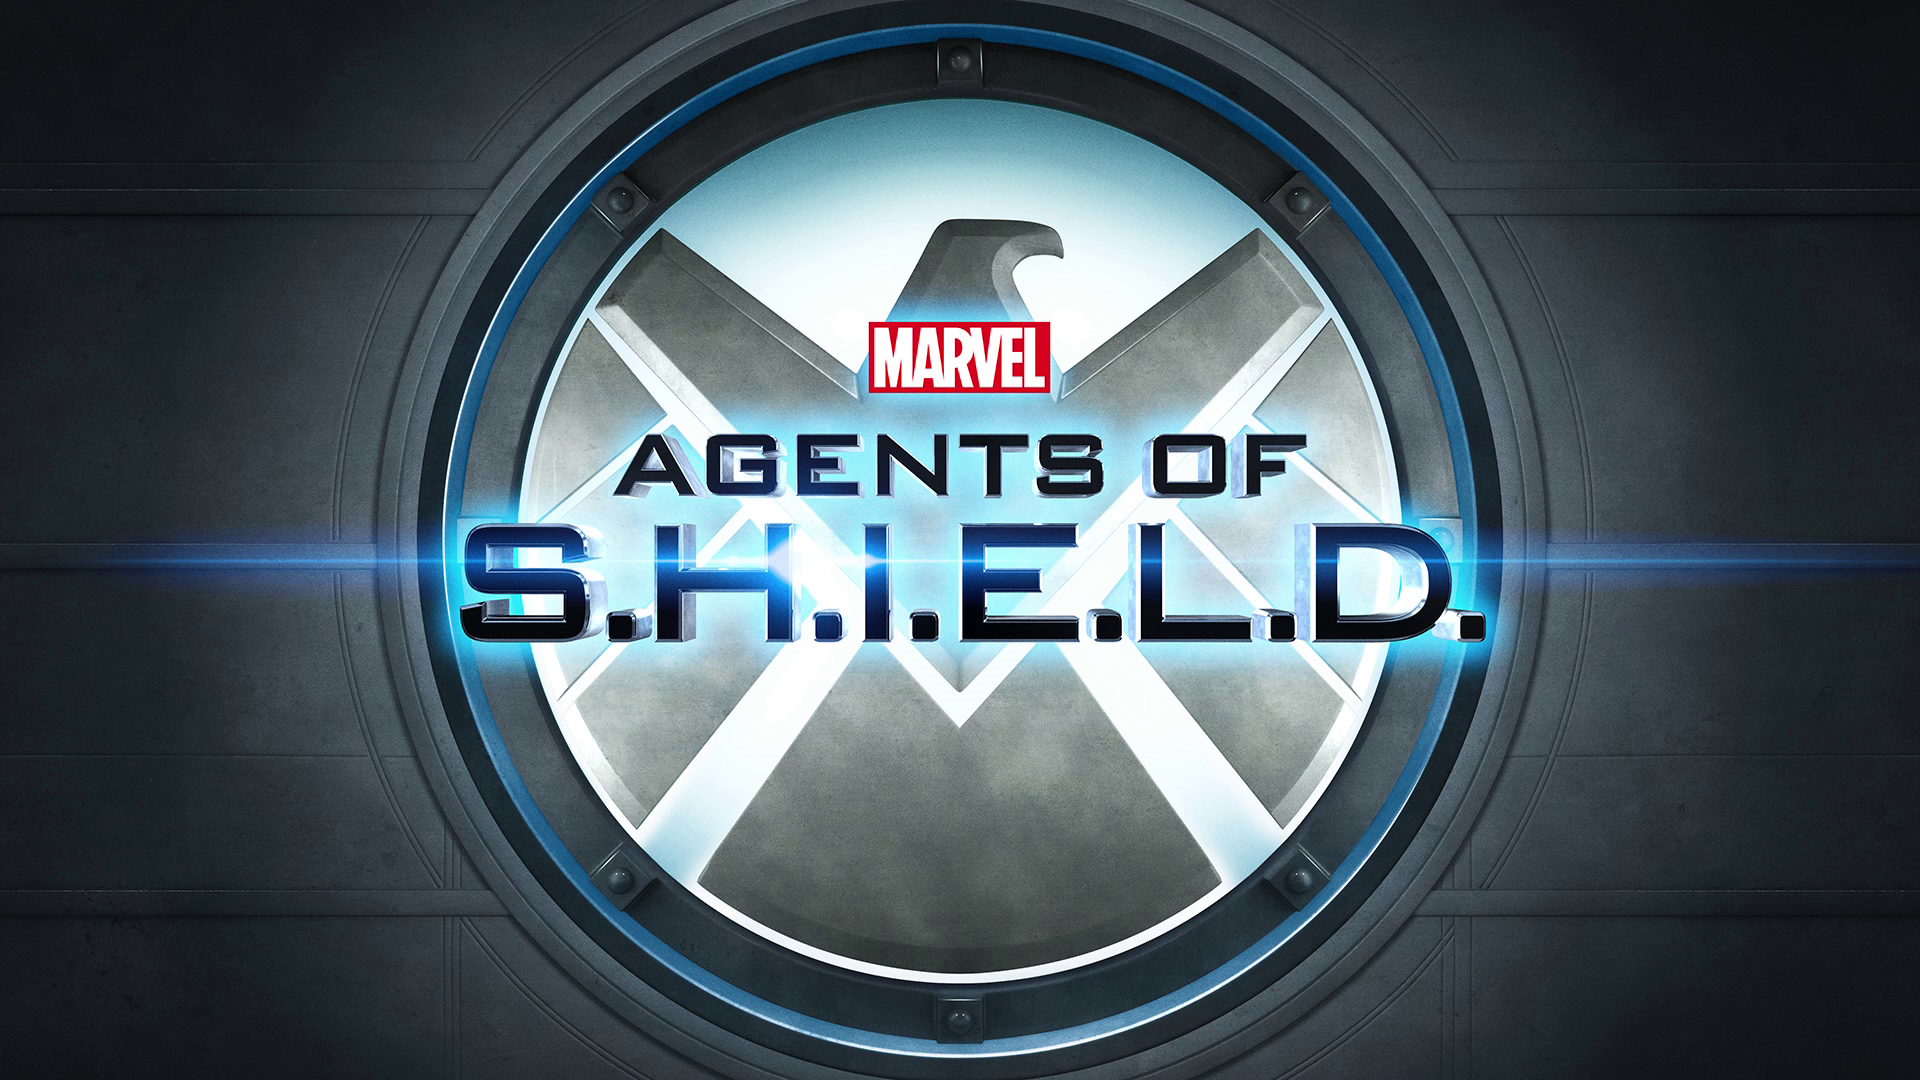 agents of shield wallpaper hd full hd pictures